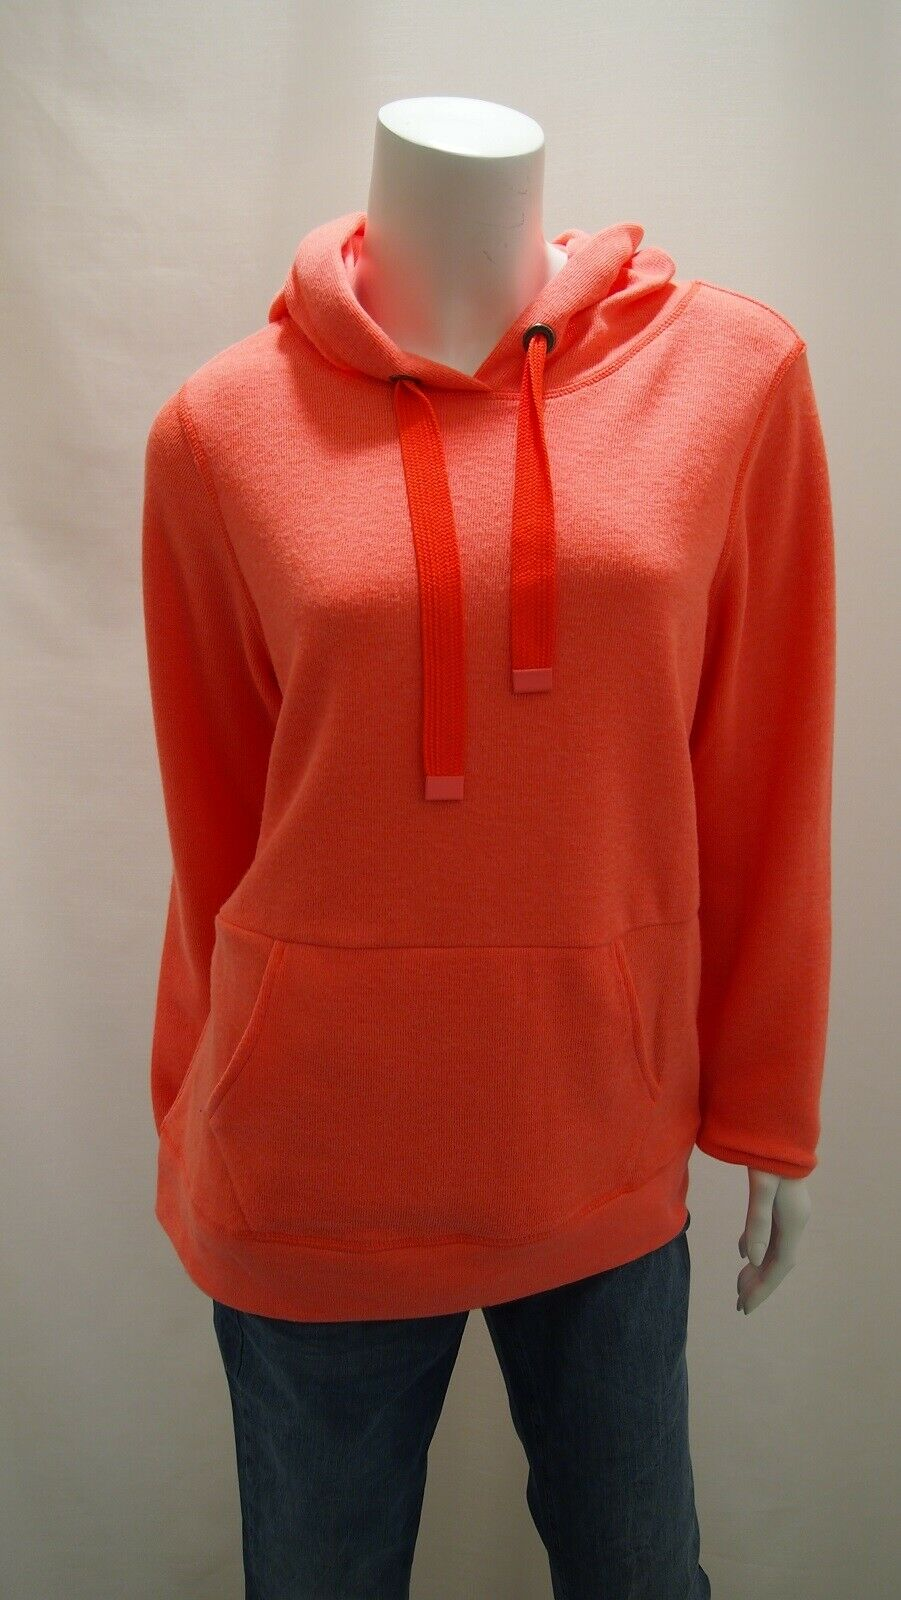 Cecil Shirt in Hoodie-Style Item-No. B312943 Women's Sweatshirt New